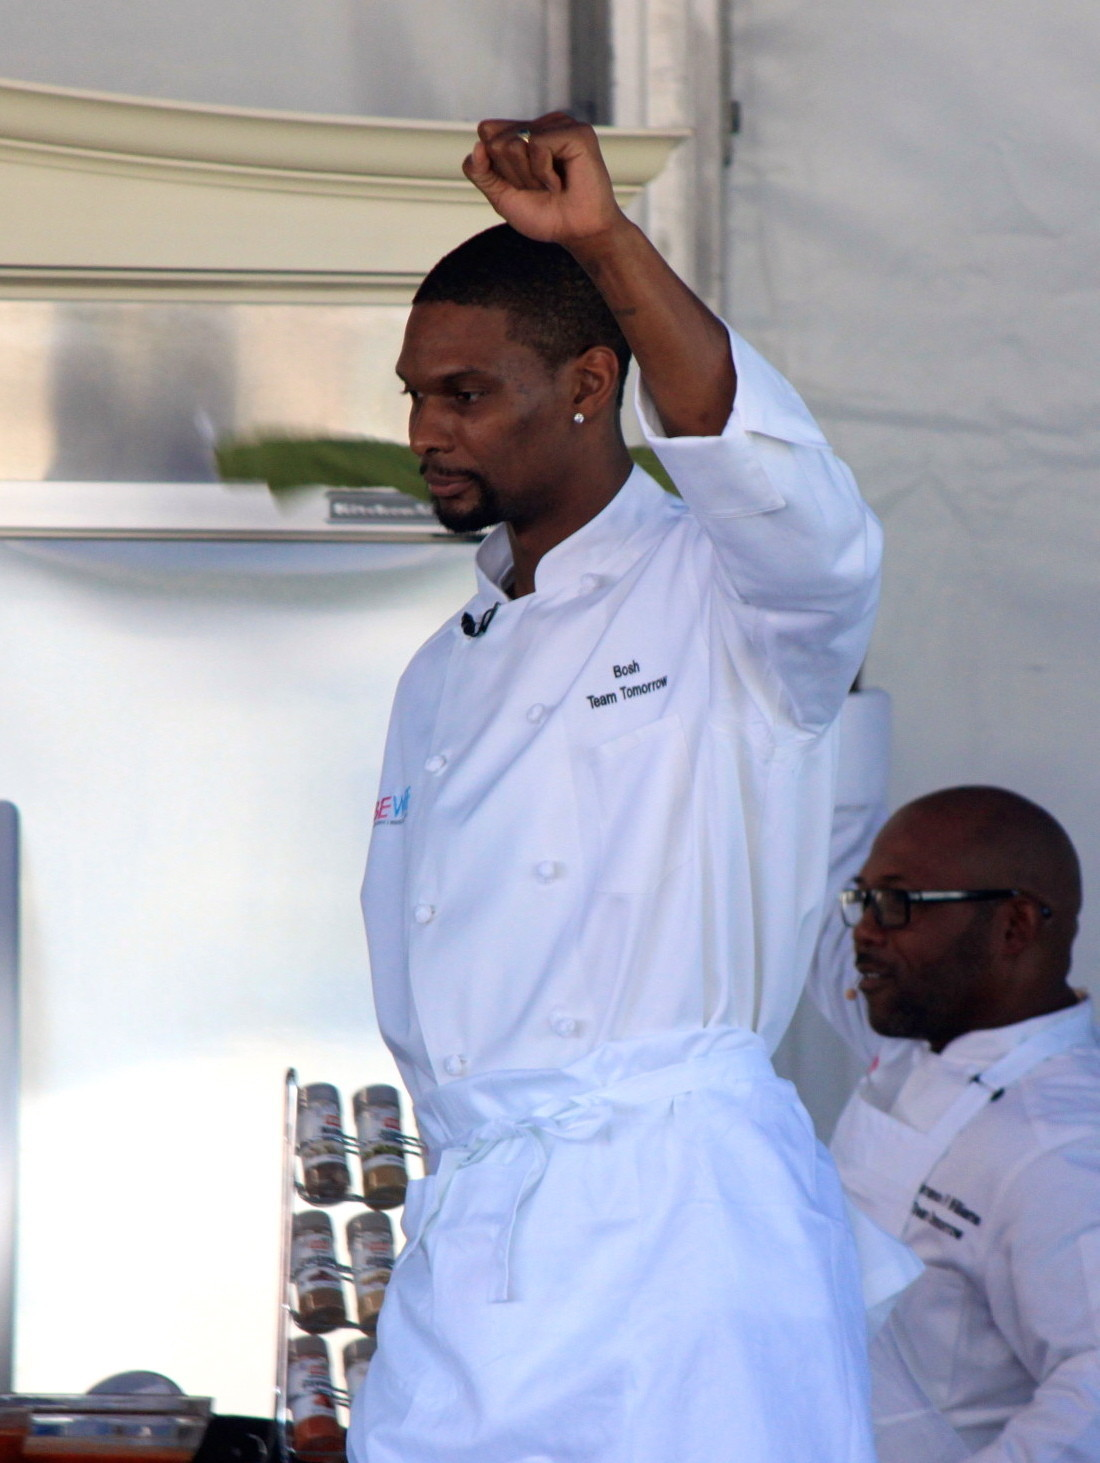 Celebrity-spotting at the South Beach Wine & Food Festival - SOBEWFF: Grand Tasting Village